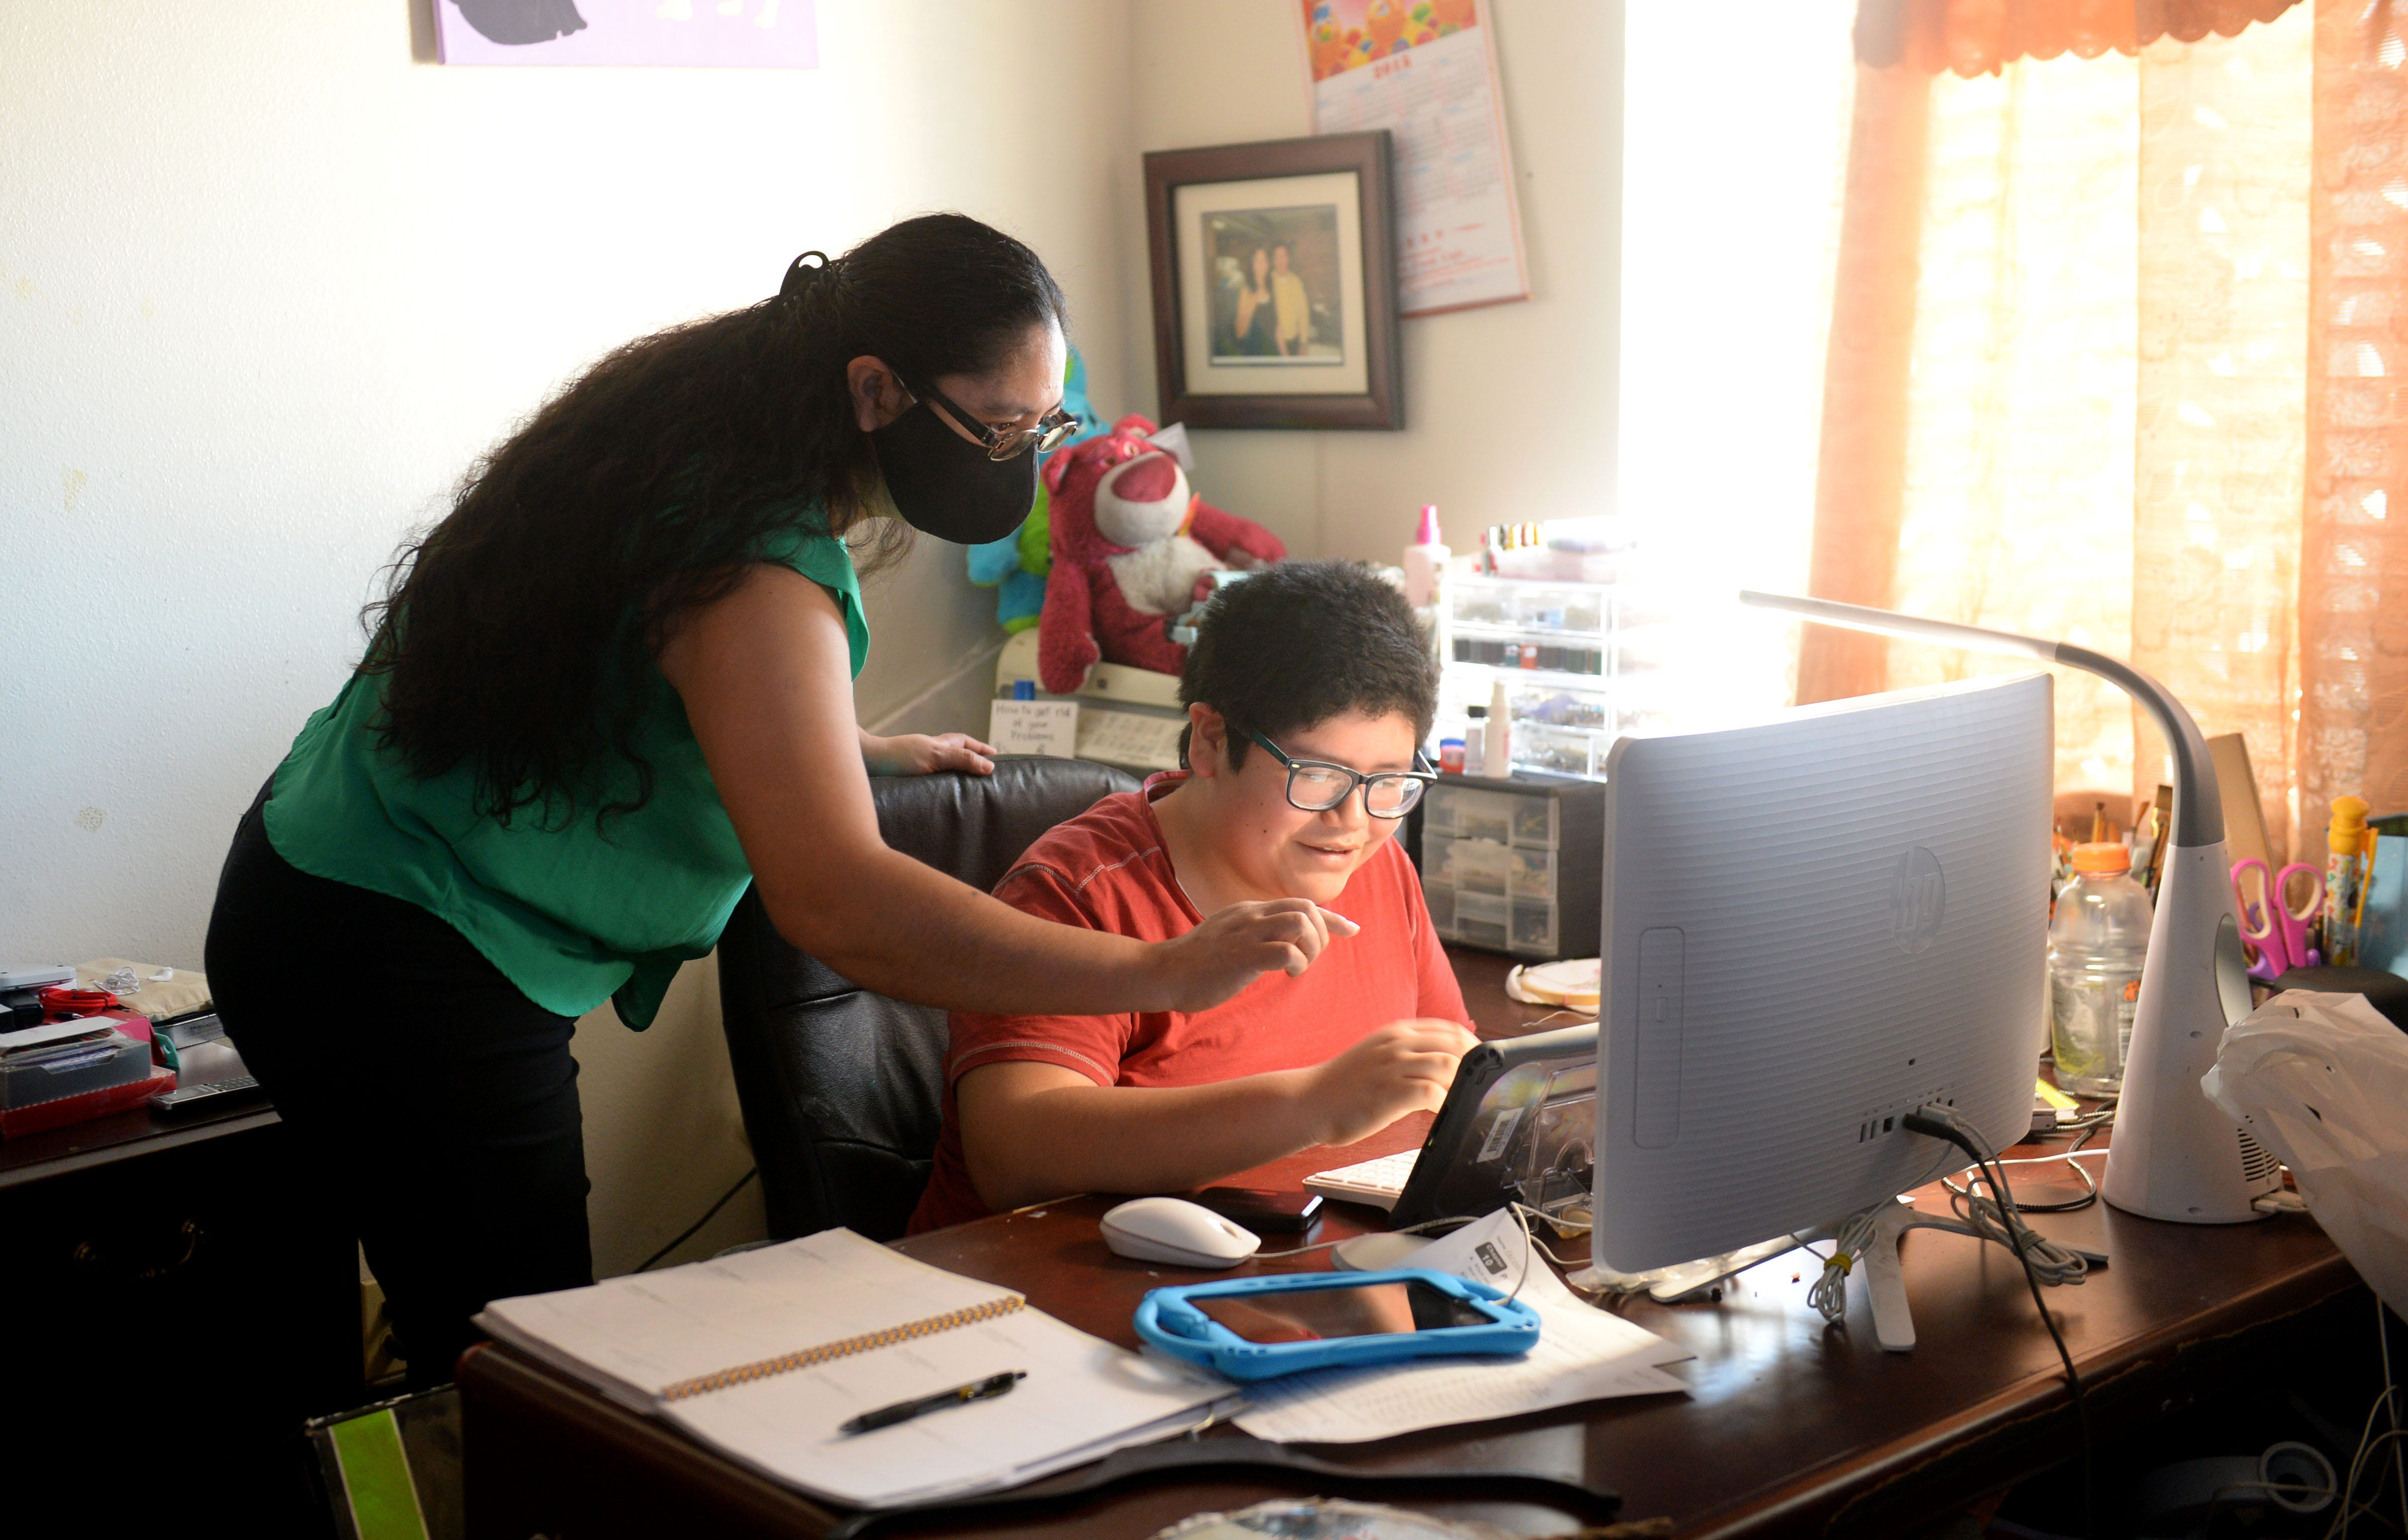 Jessica Vargas, left, helps her son Jorge Alberto Ruiz, 13, with his online classes on Monday, Feb. 22, 2021. Jorge is enrolled in special education classes and needs daily help from his mom.